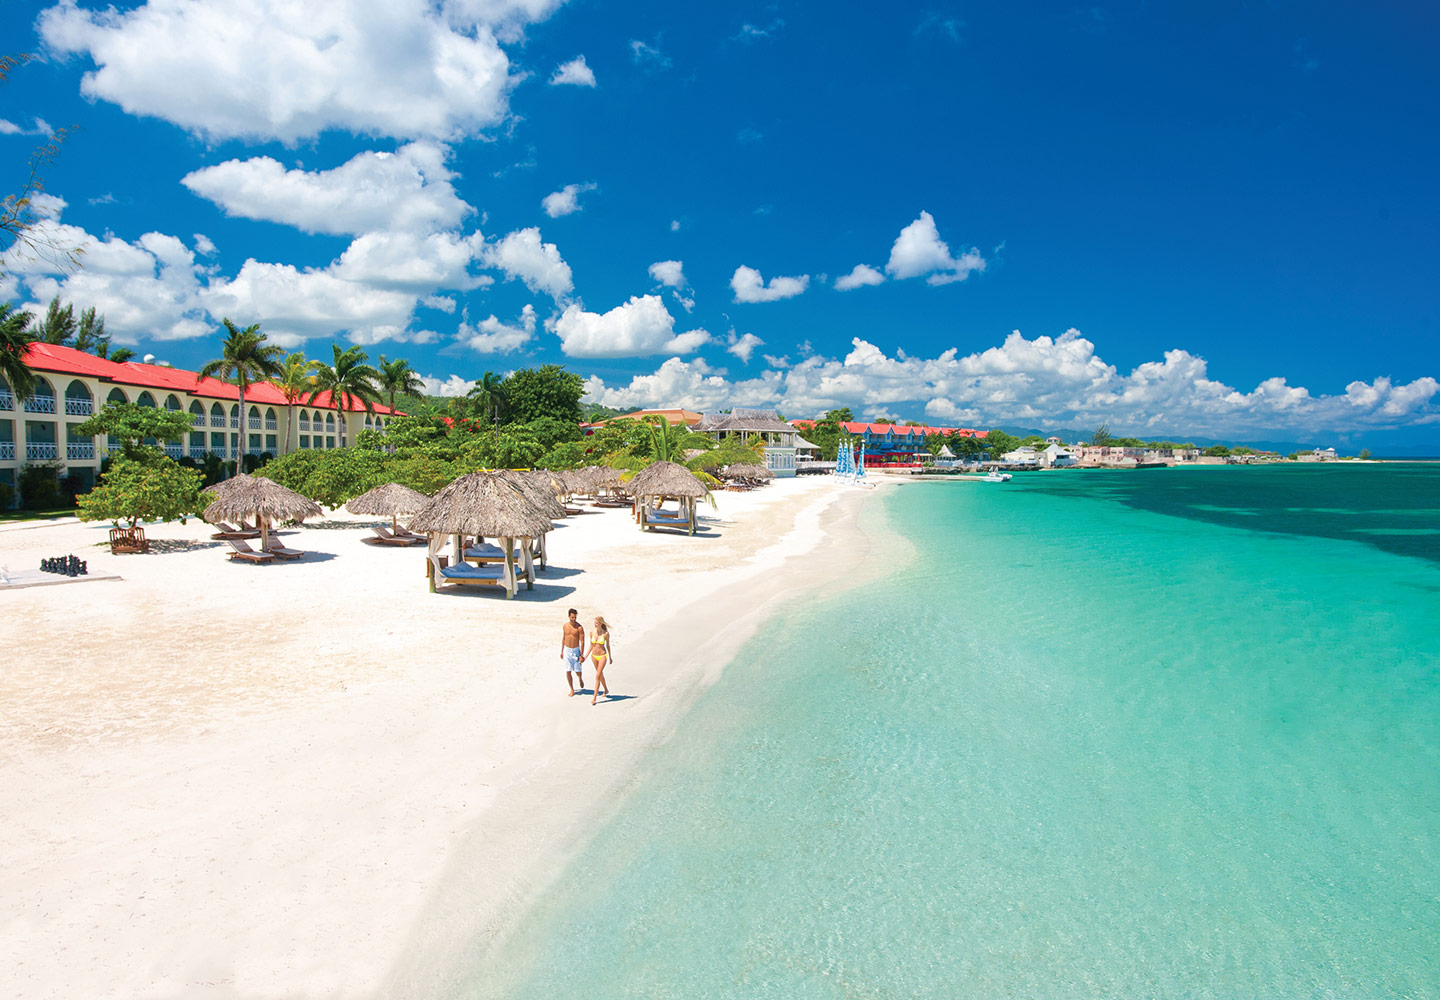 Sandals Jamaica All Inclusive Resort Amp Luxury Beach